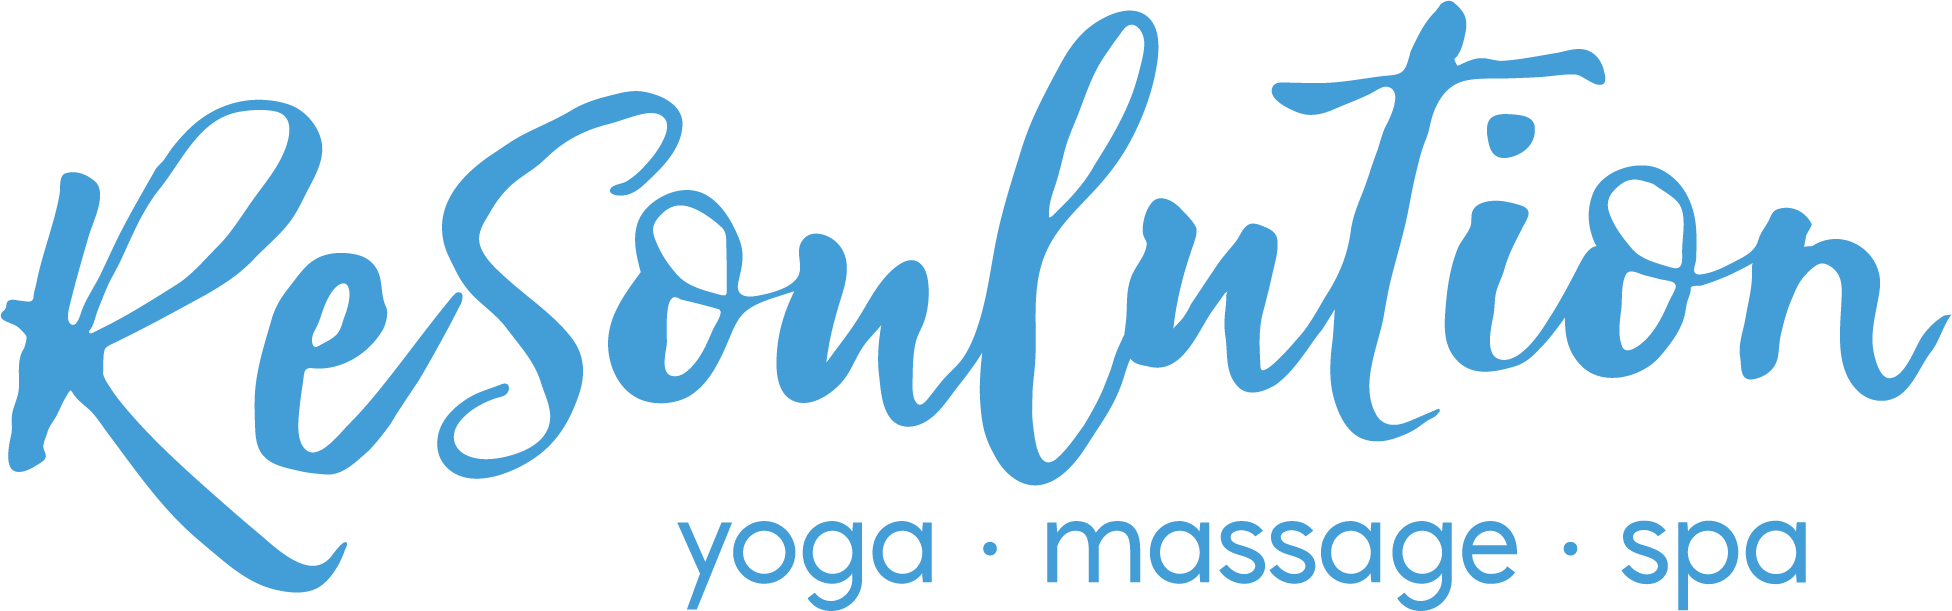 ReSoulution Yoga Massage Esthetics Bowmanville